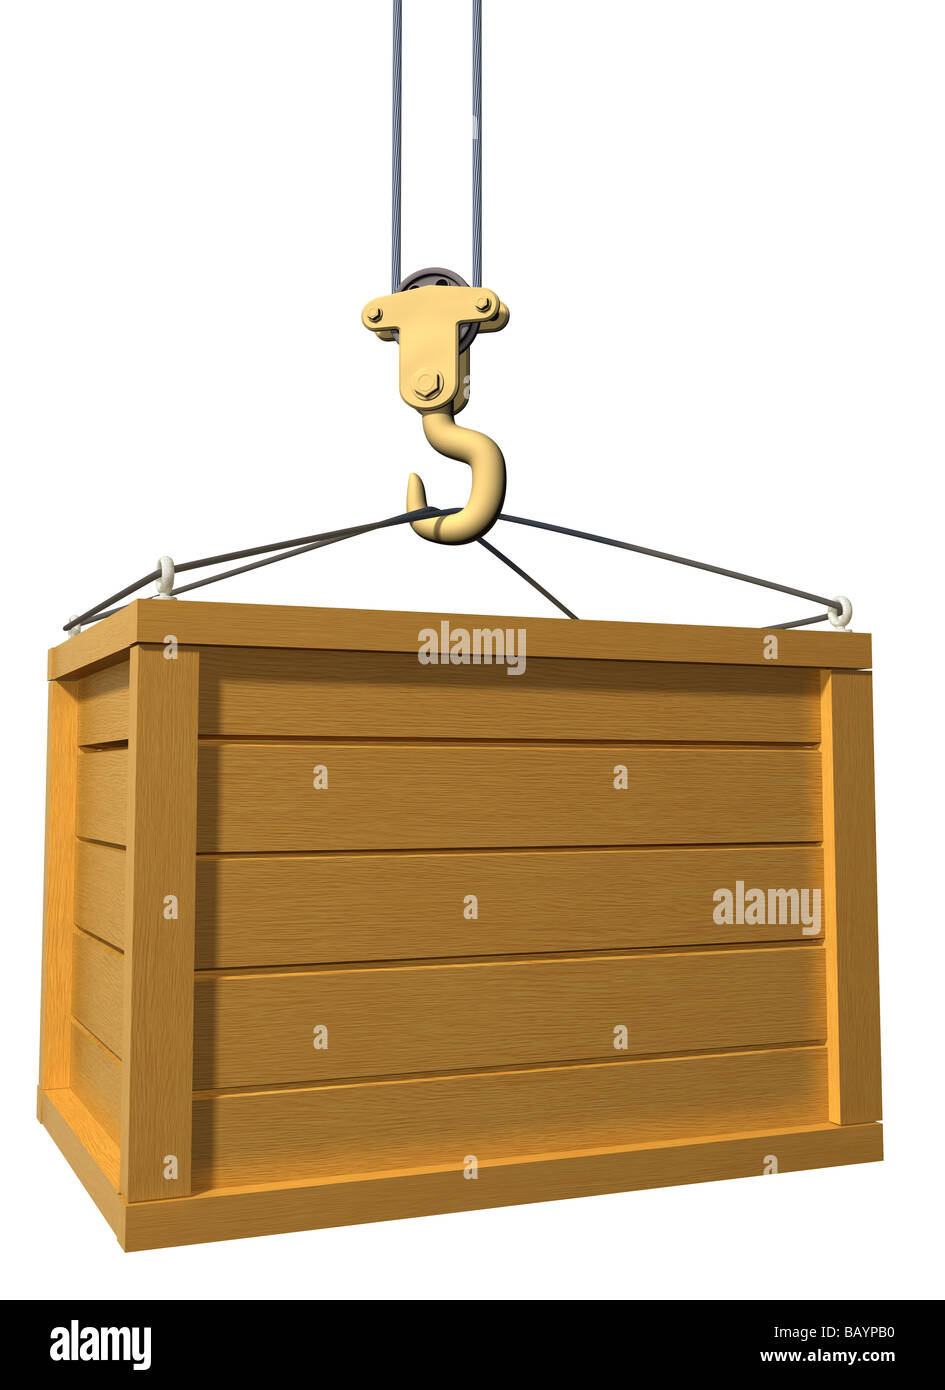 wooden box clipart. isolated illustration of a crane lifting wooden box clipart